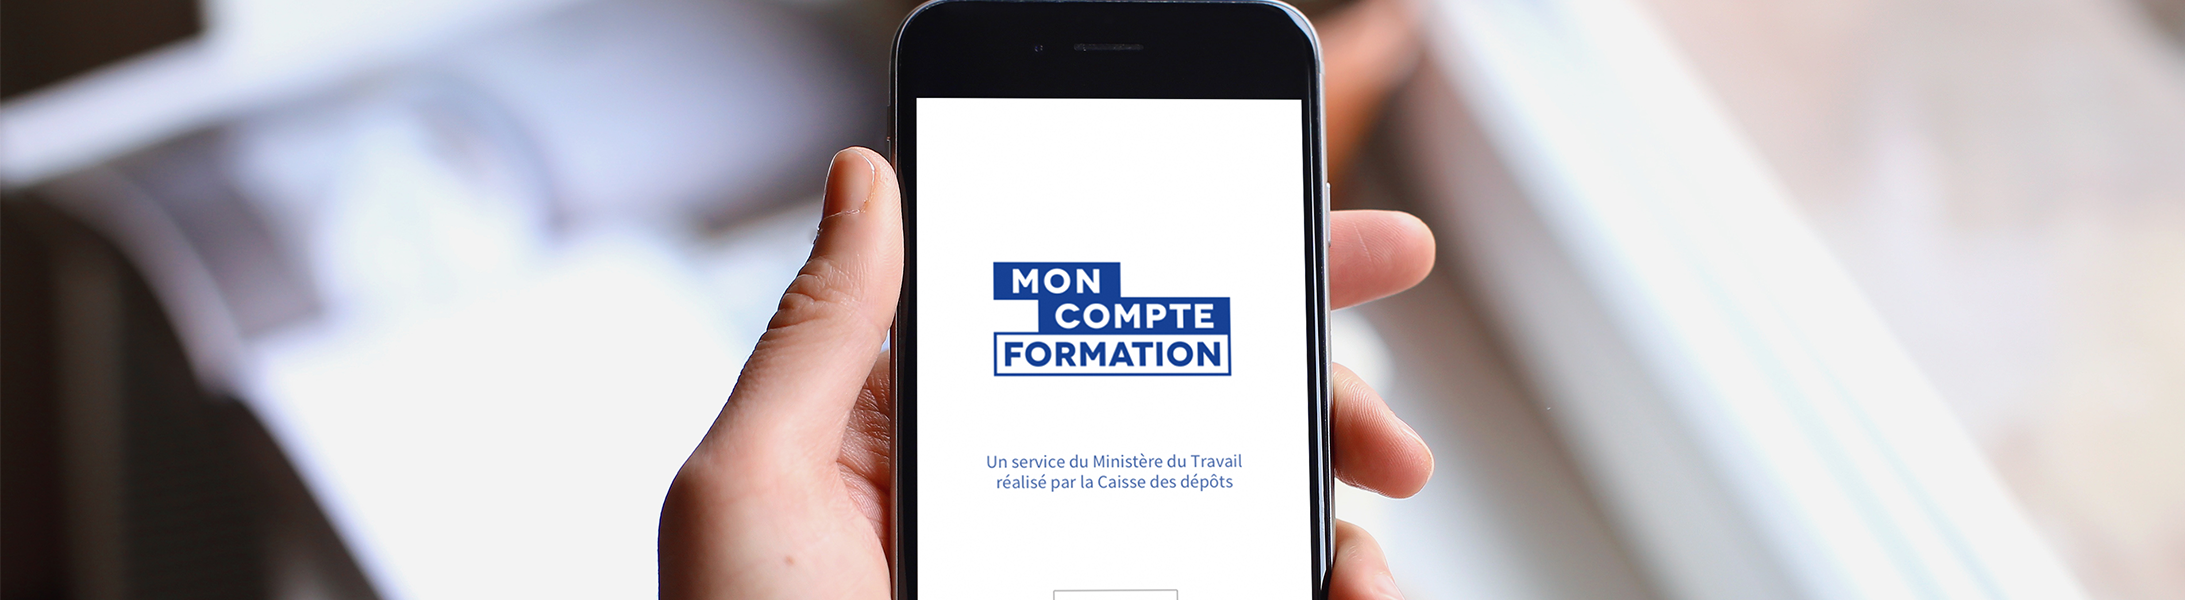 Mon compte formation application mobile